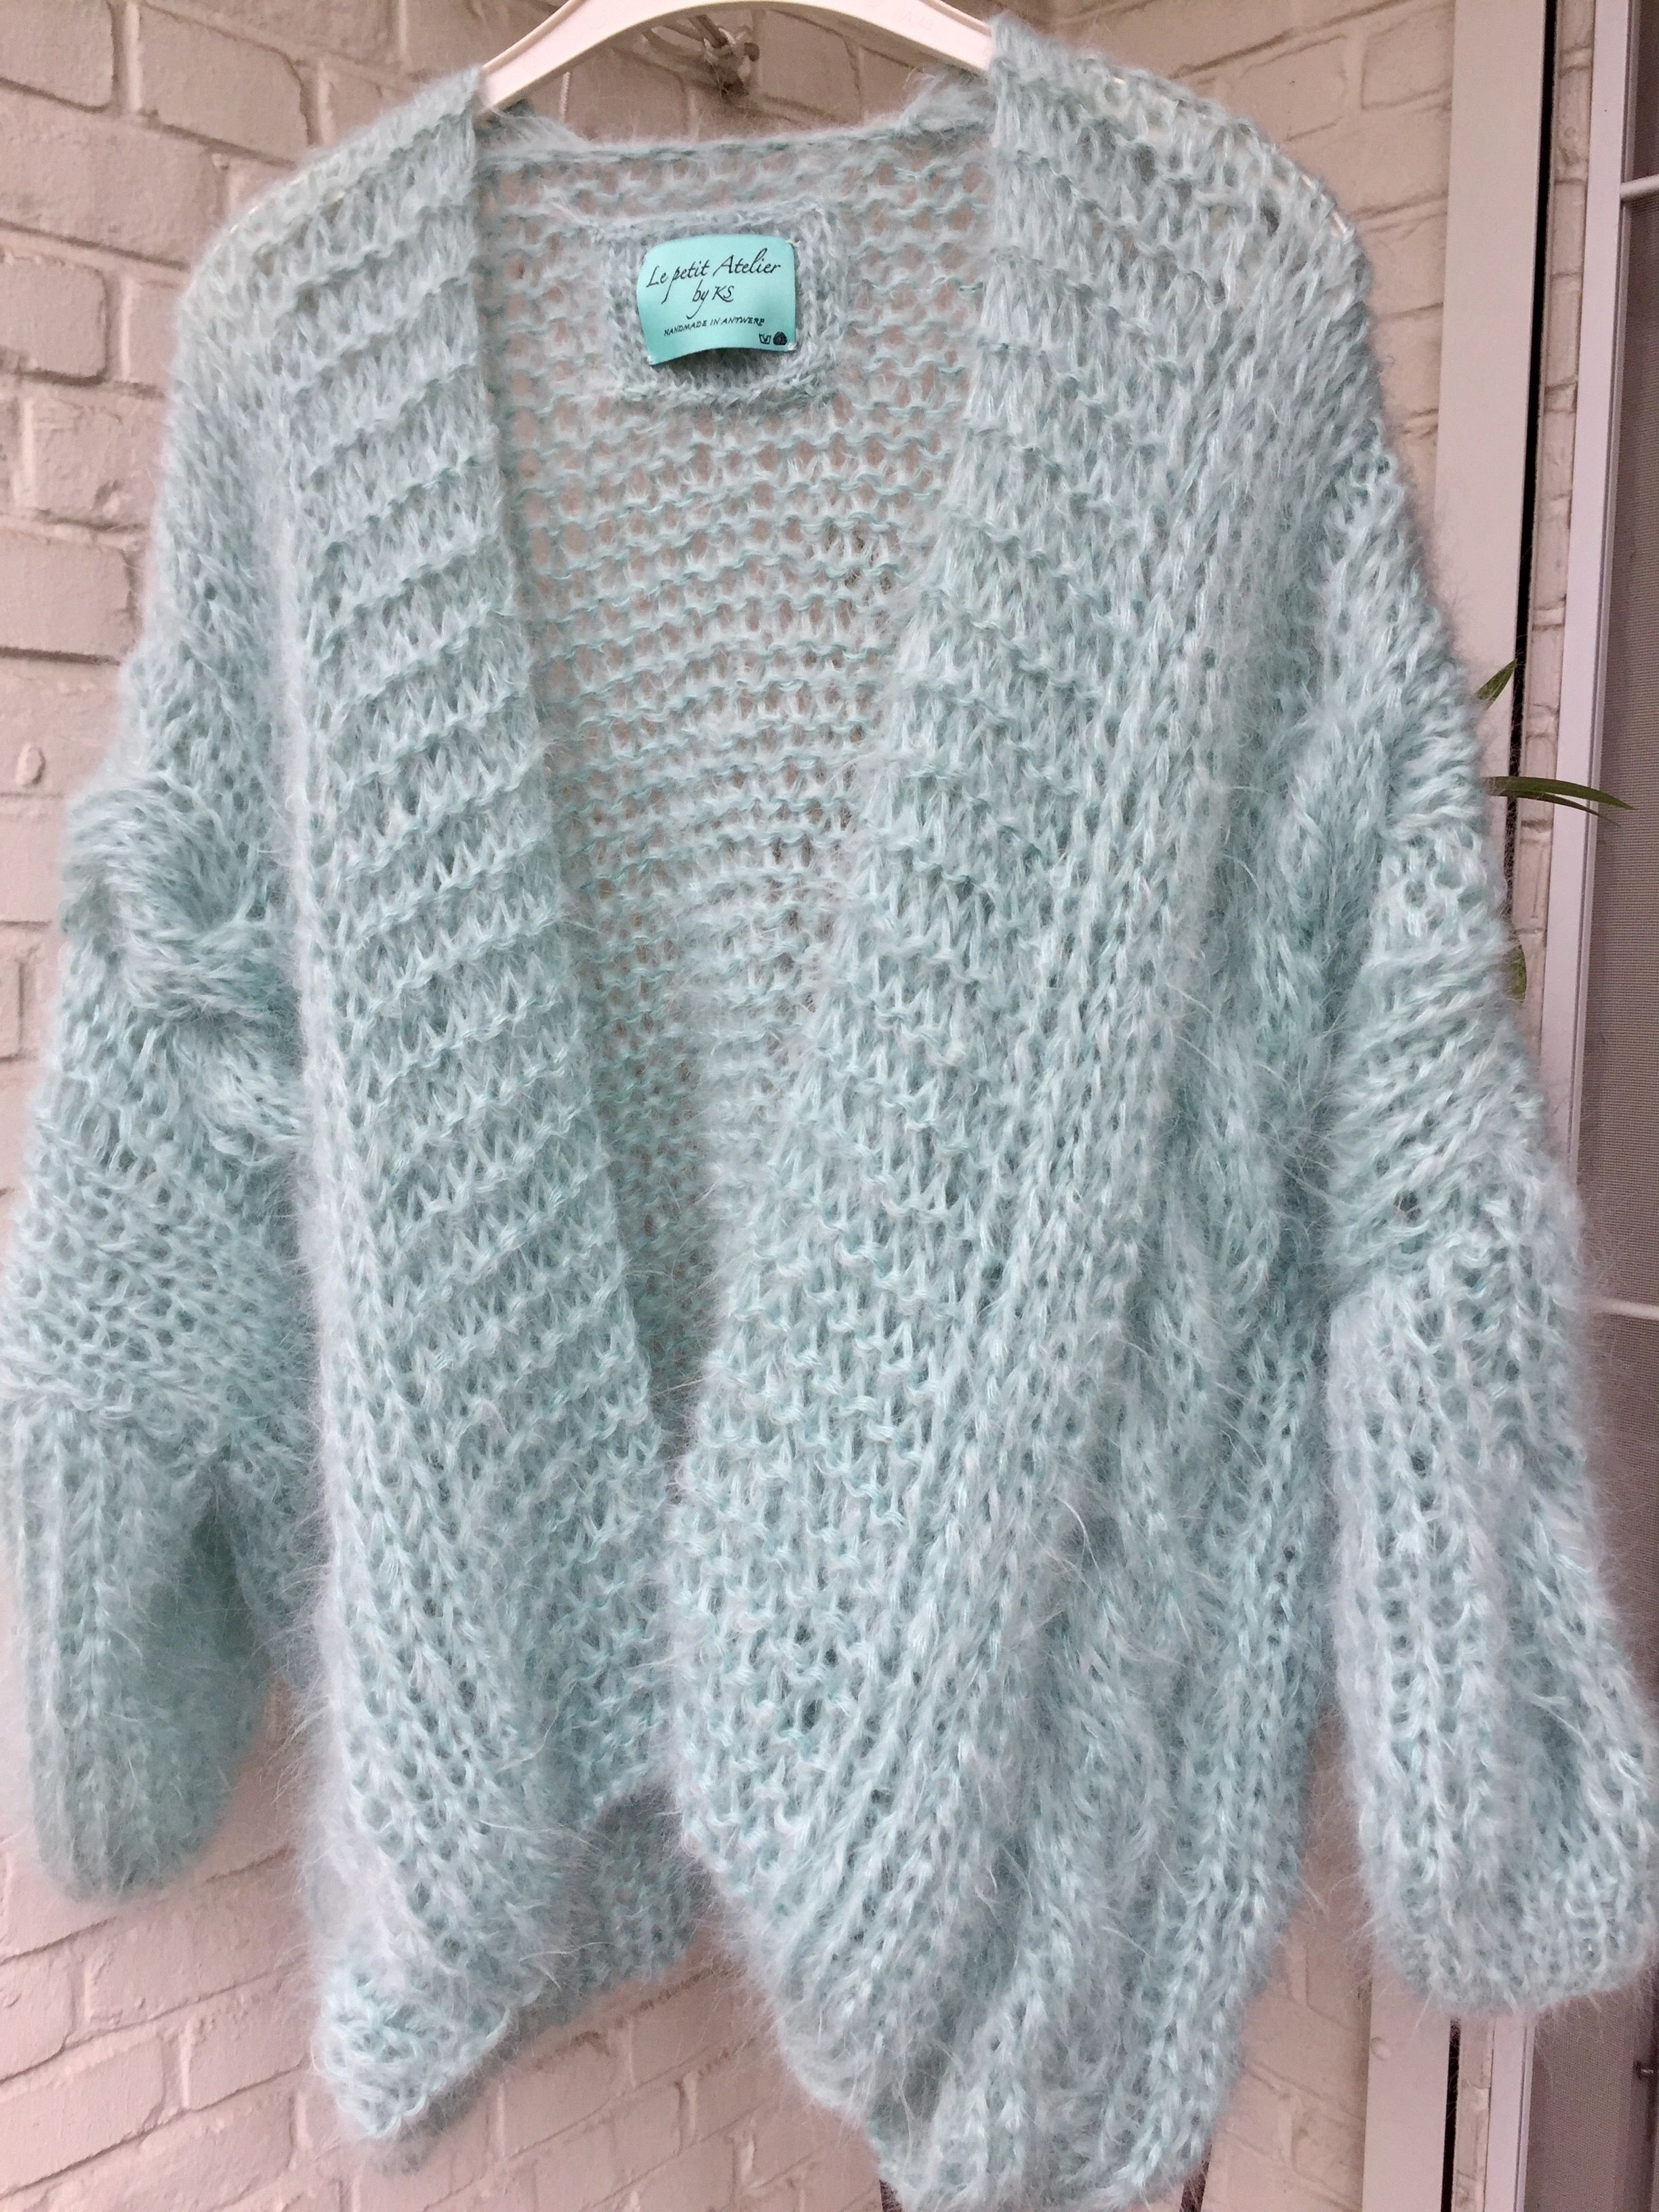 Pin von Вика auf Вязание | Pinterest | Strick, Strickjacke und Jacken